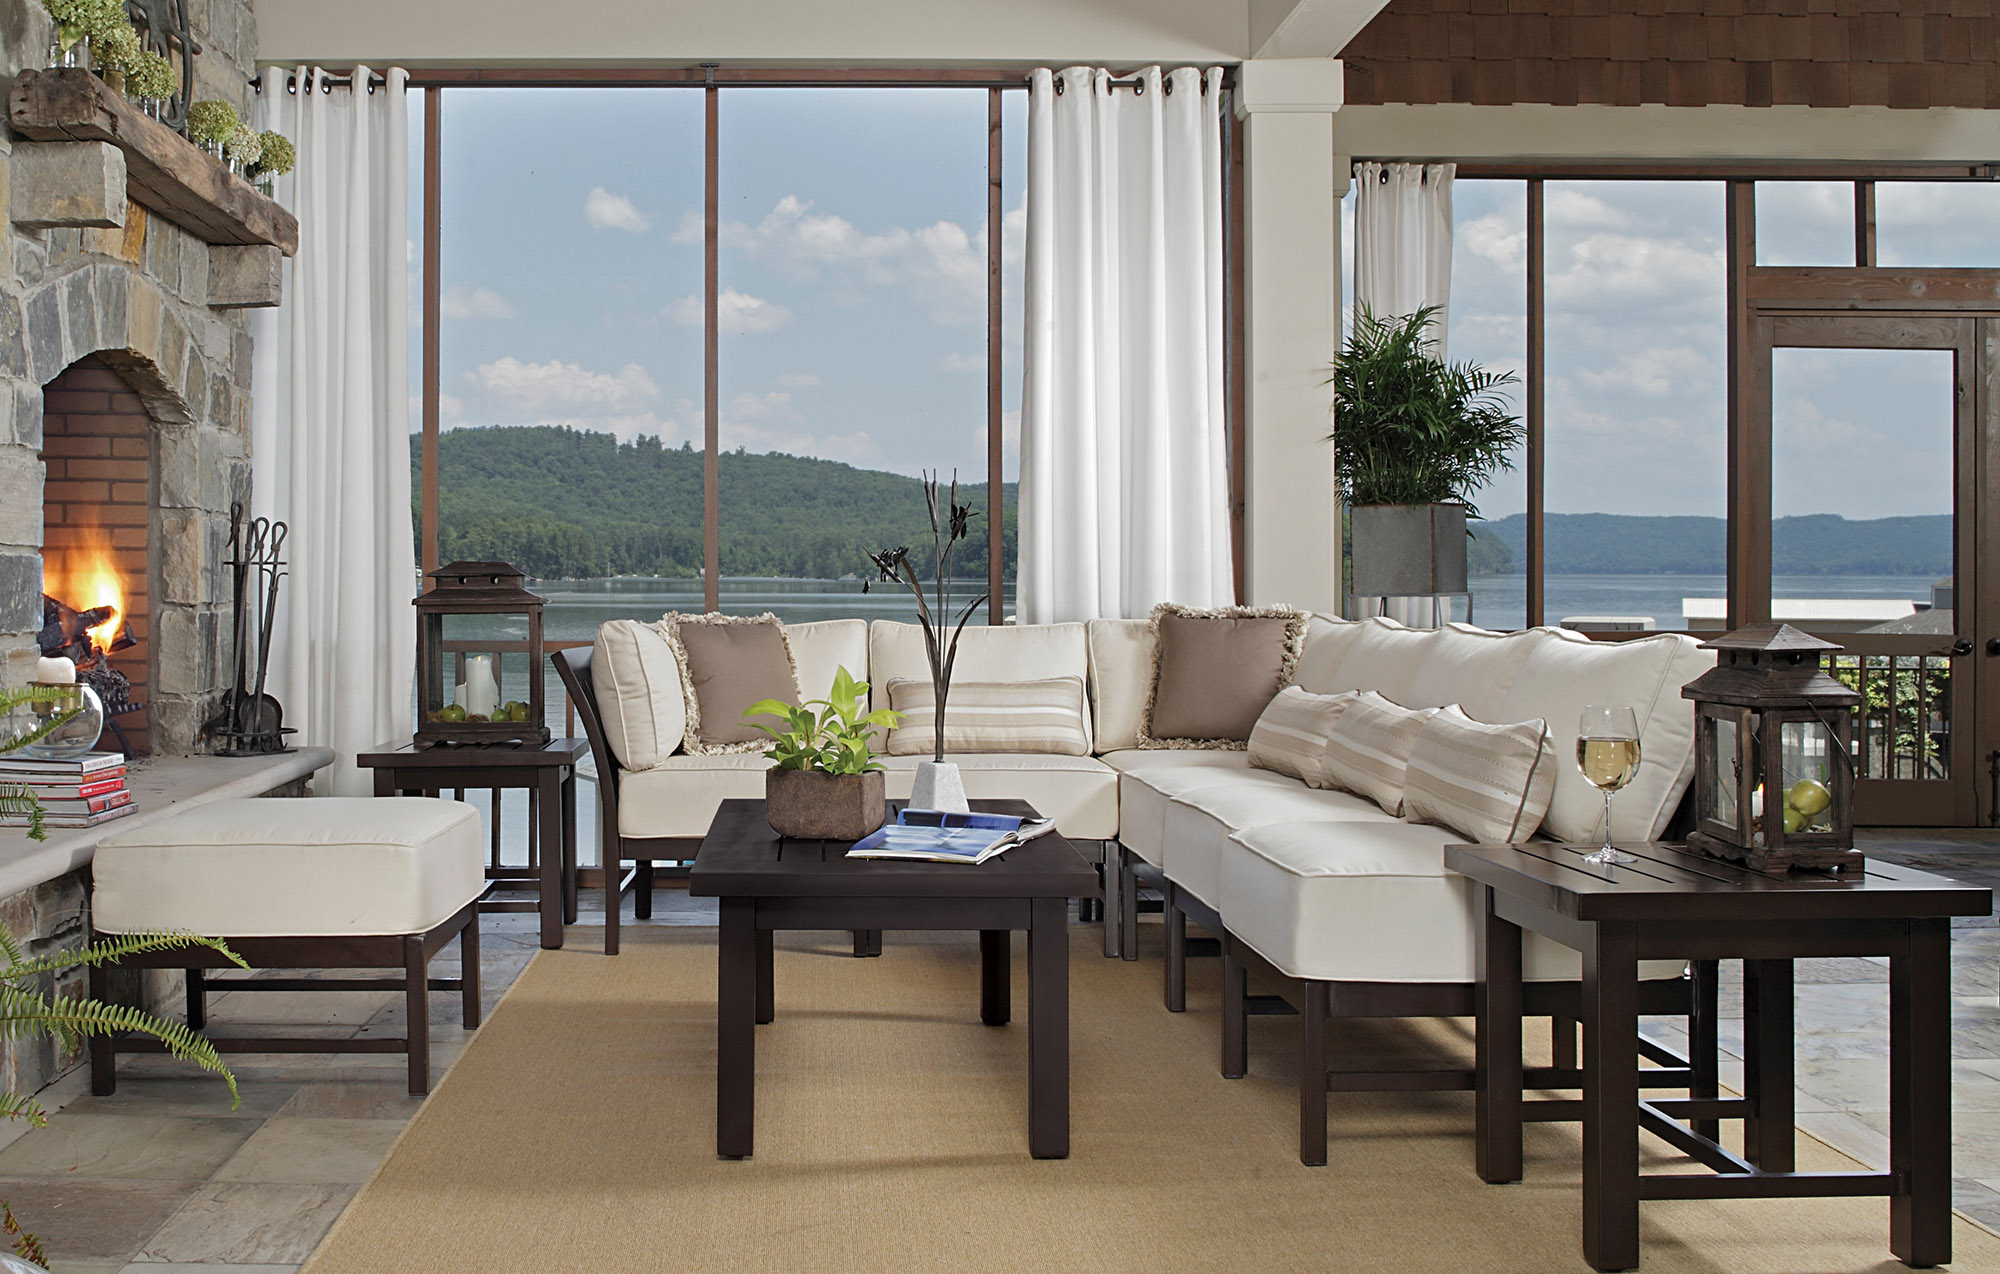 Using Outdoor Furniture Indoors Inside Out Selecting Outdoor Fabrics And Upholstery For